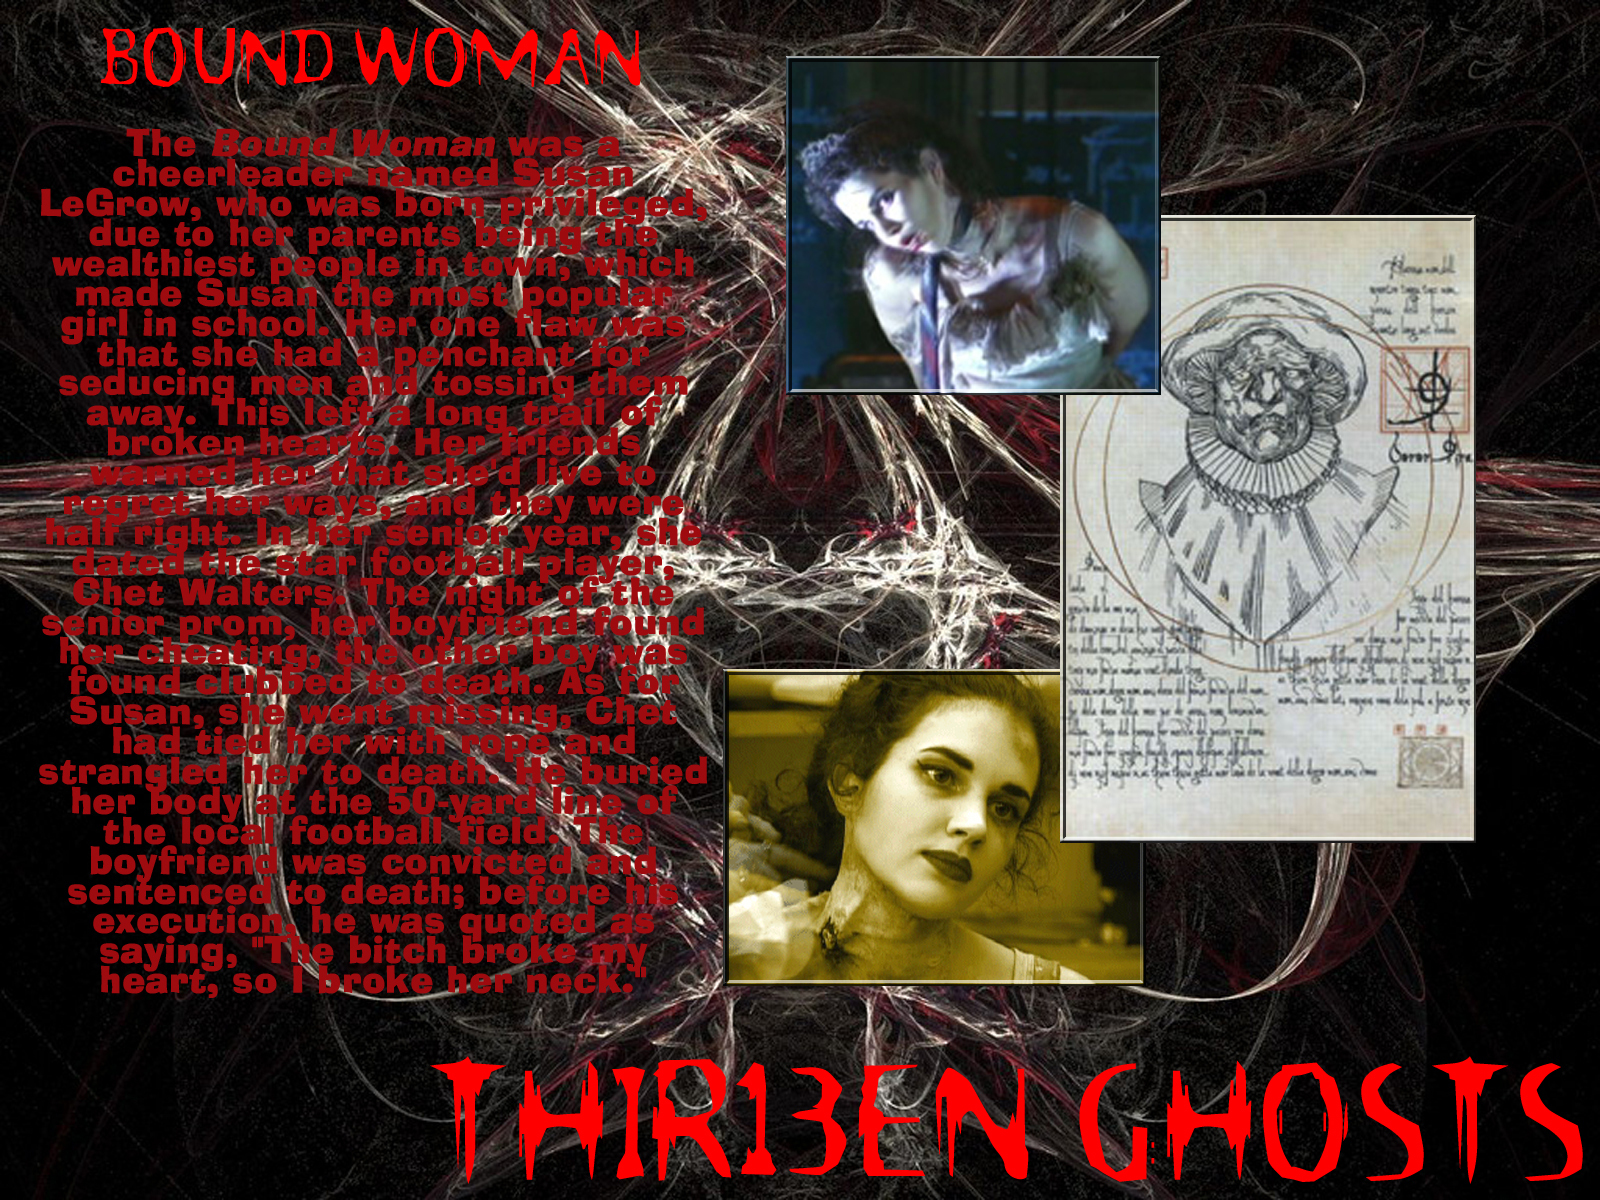 Thirteen ghosts naked women porn scenes